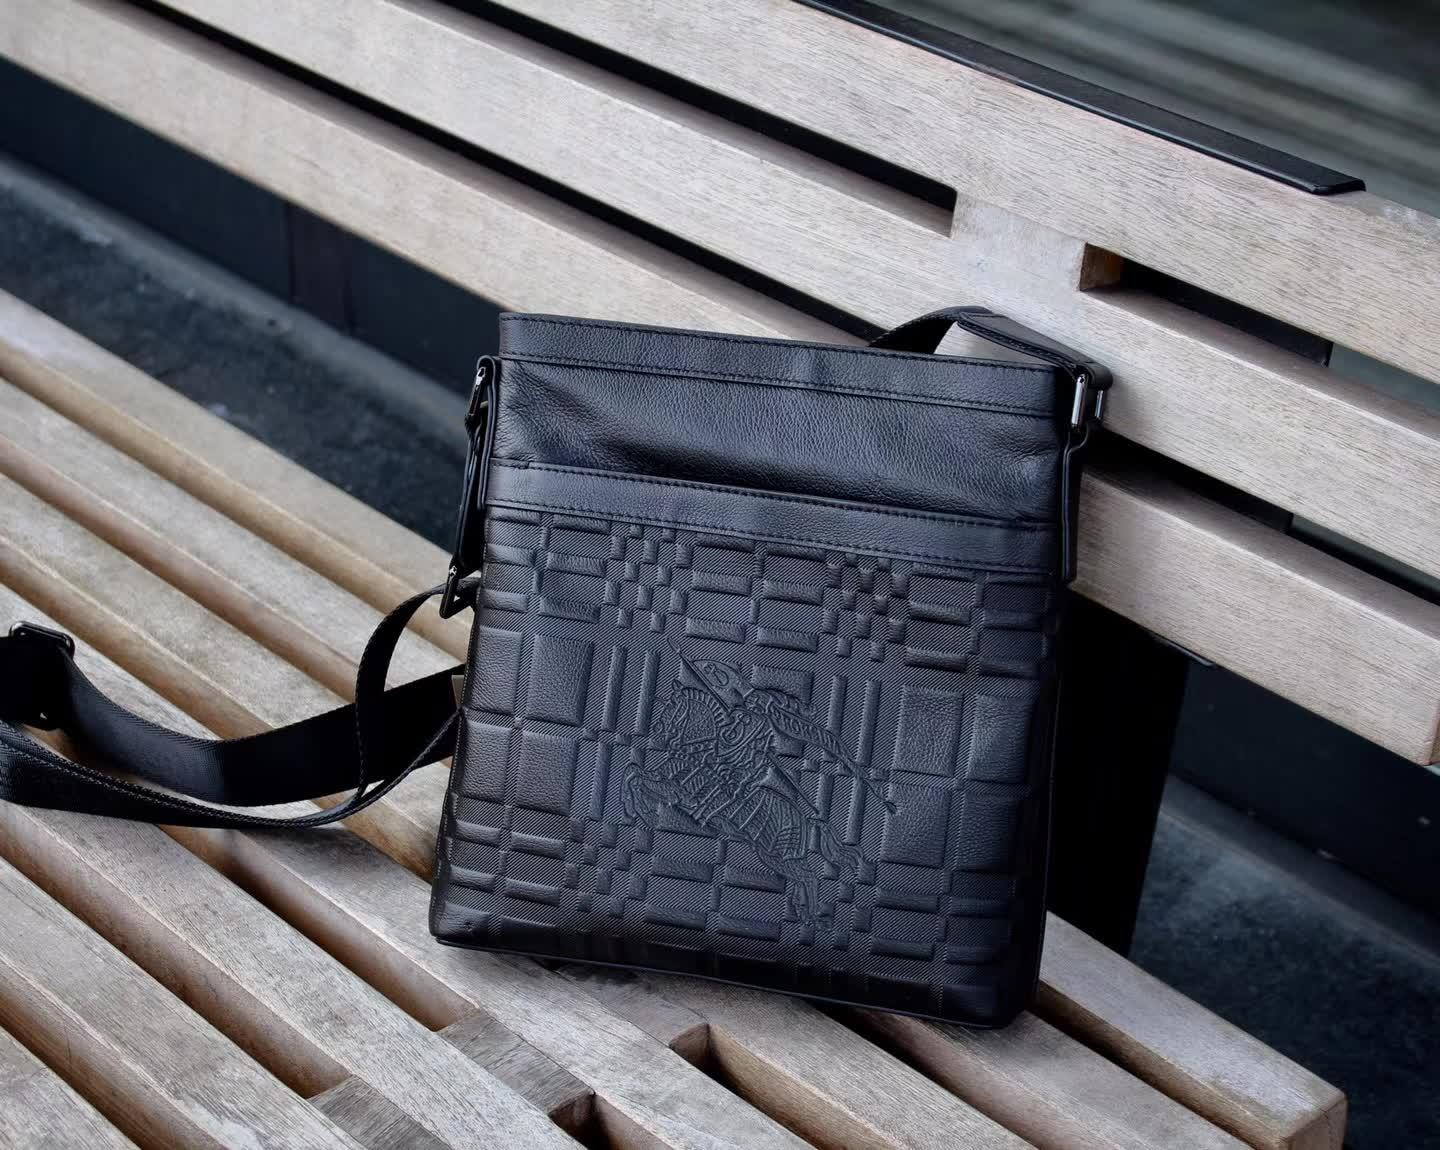 Burberry 0267-3 Men Leather Messenger Bag Black